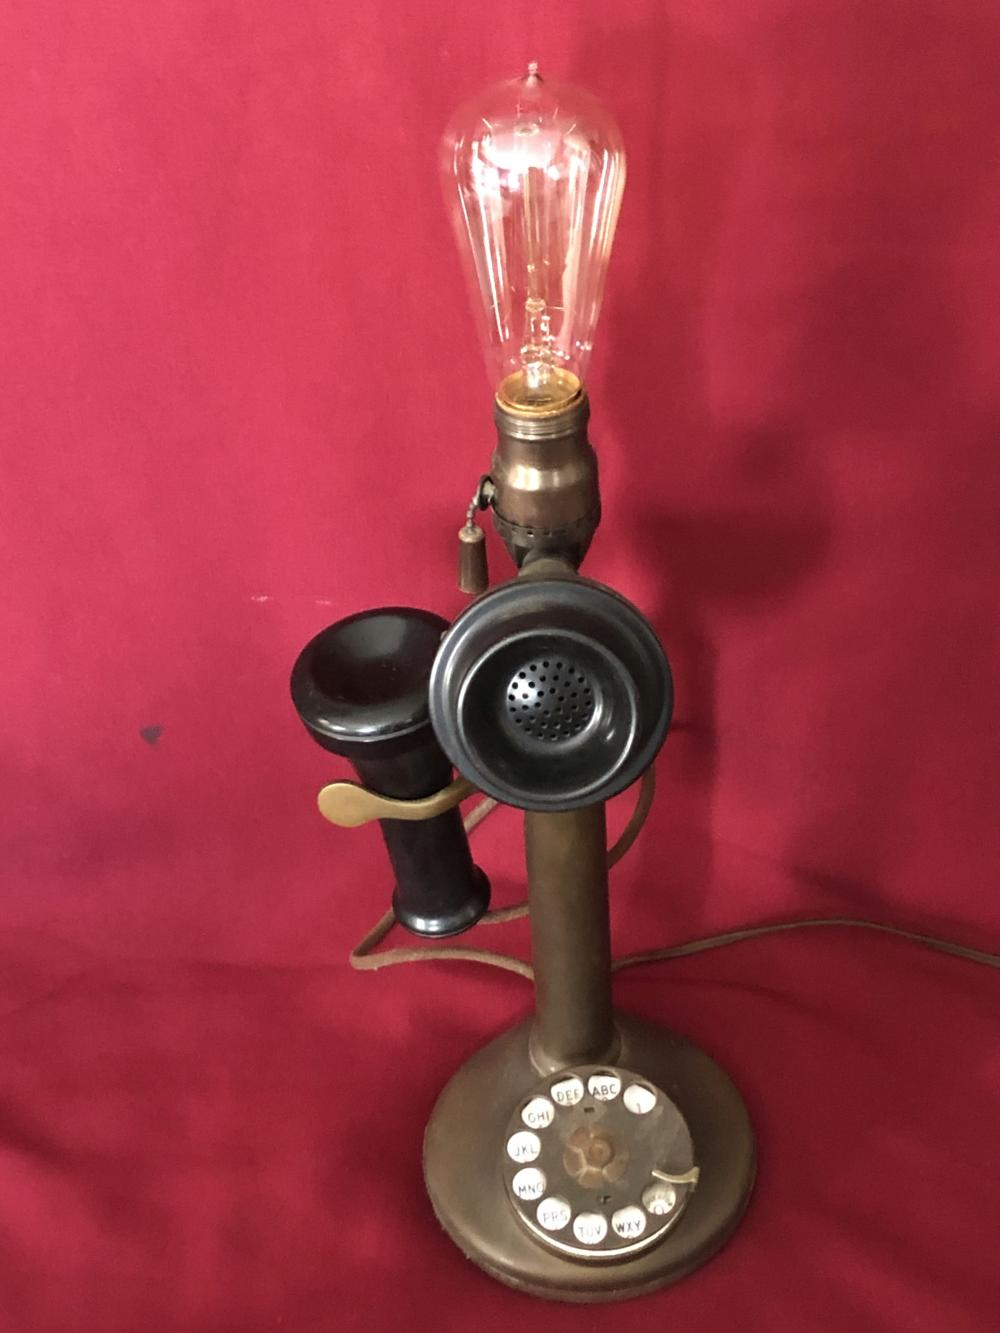 Antique brass telephone with light